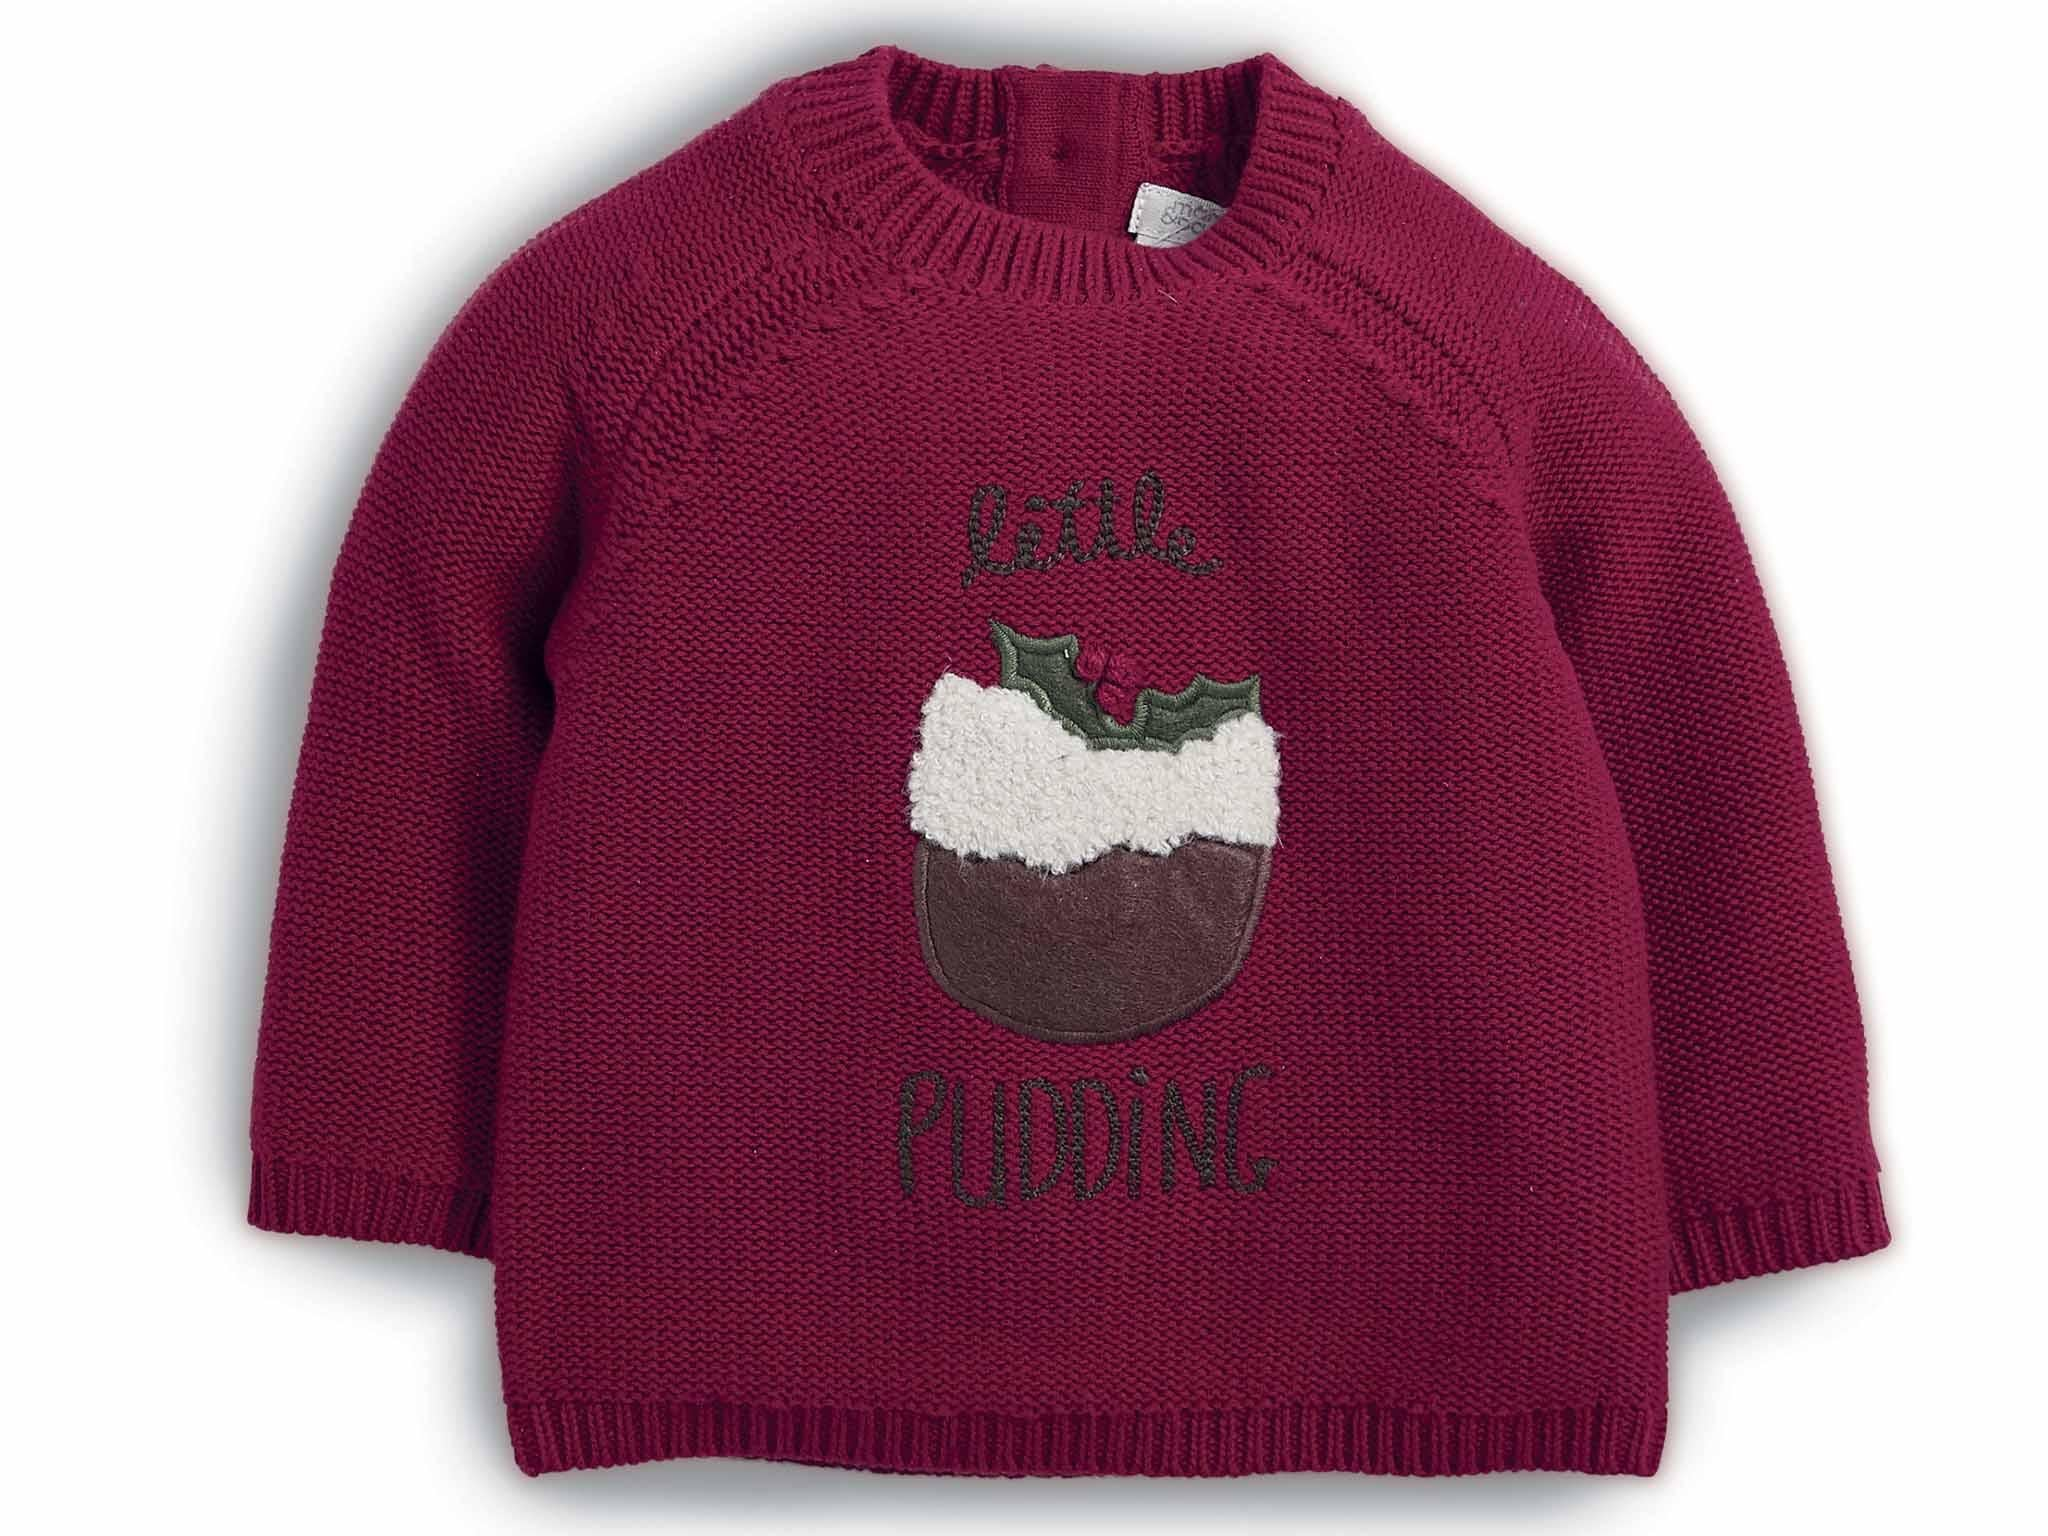 22 best Christmas jumpers for all the family | The Independent